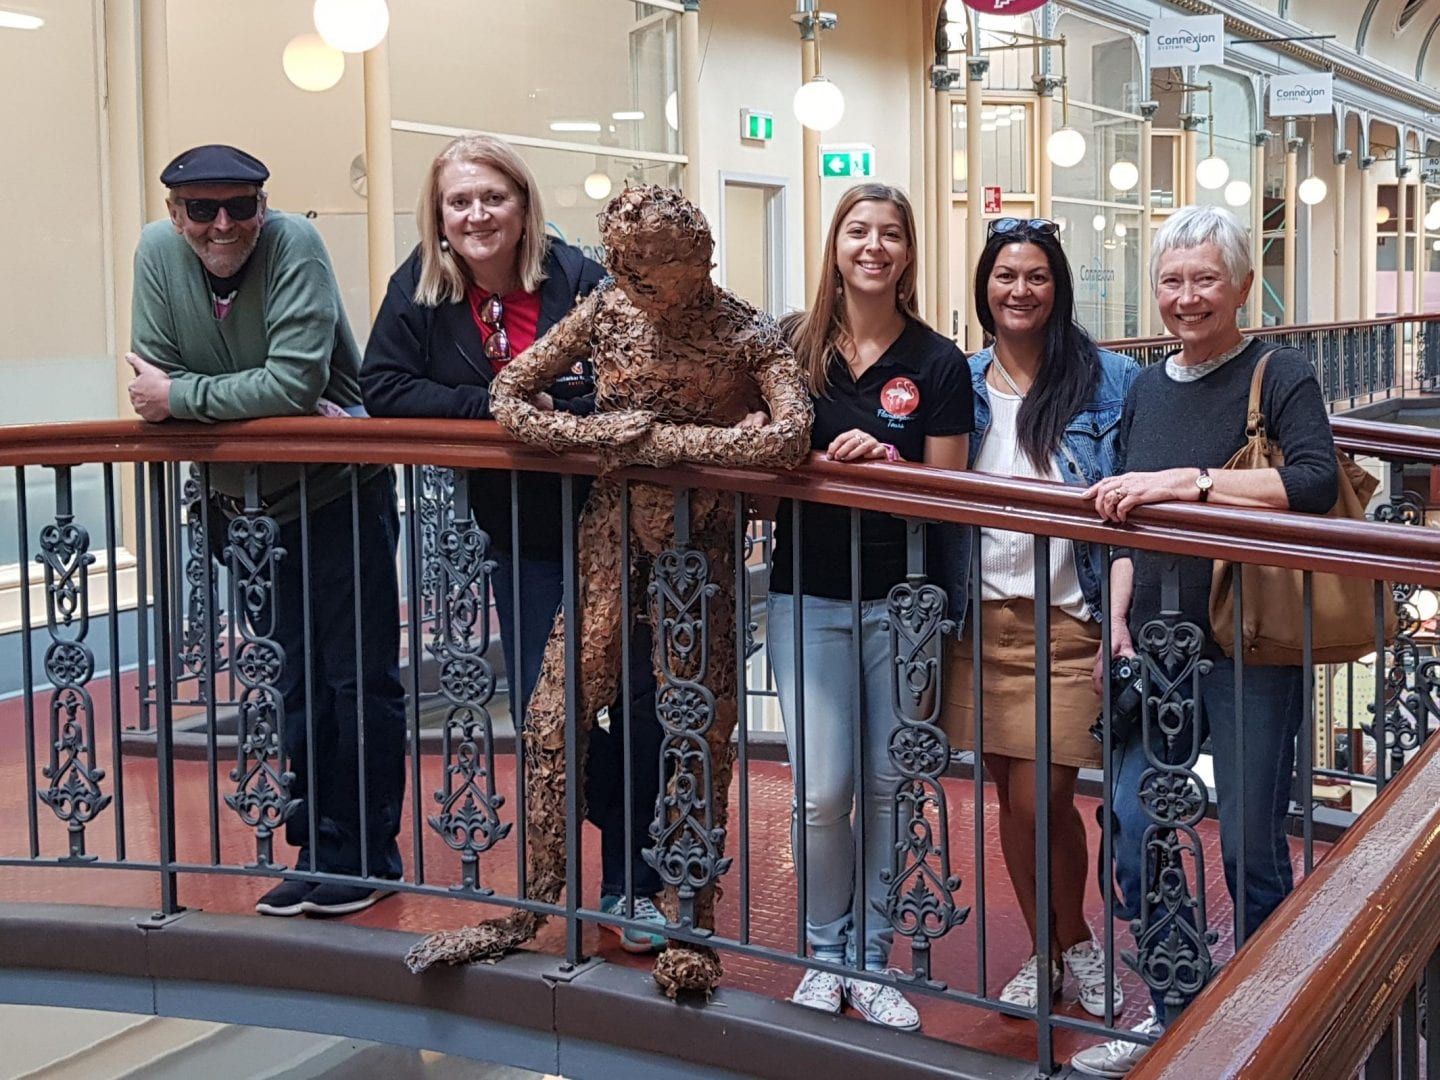 A group of four visitors with their tour guide pose in Adelaide Arcade.